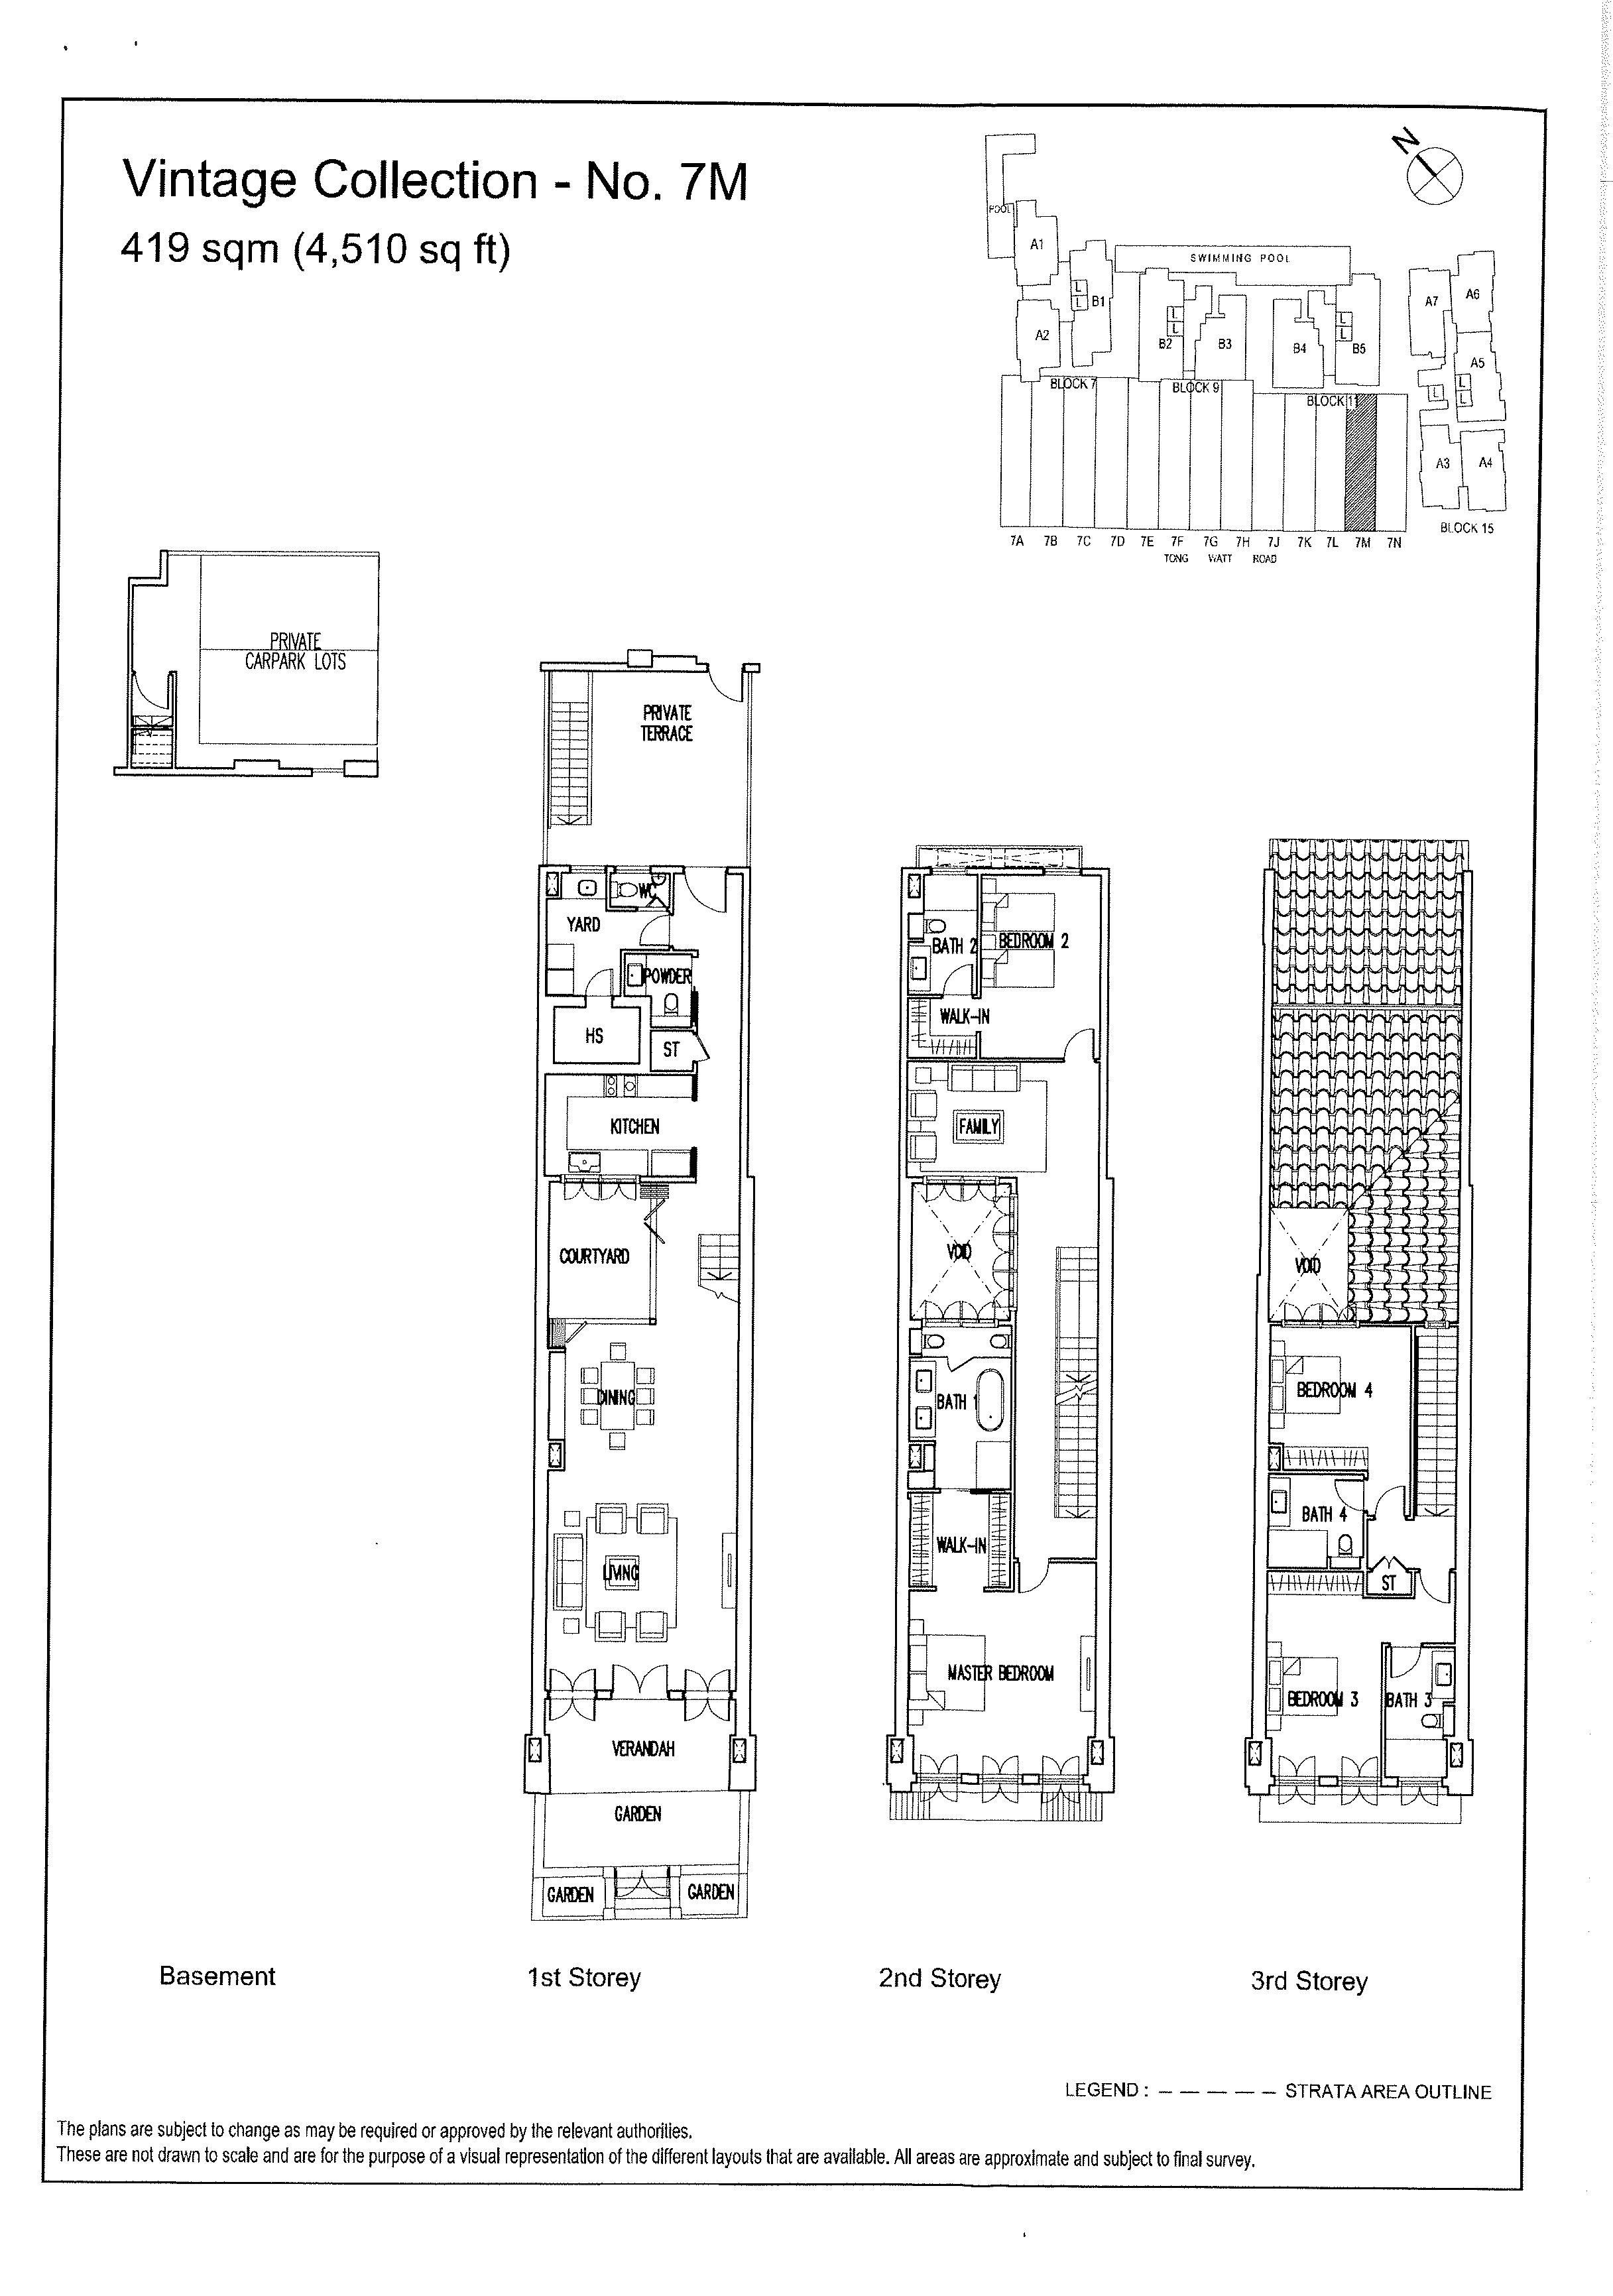 The Wharf Residence Heritage House 7M Floor Plans